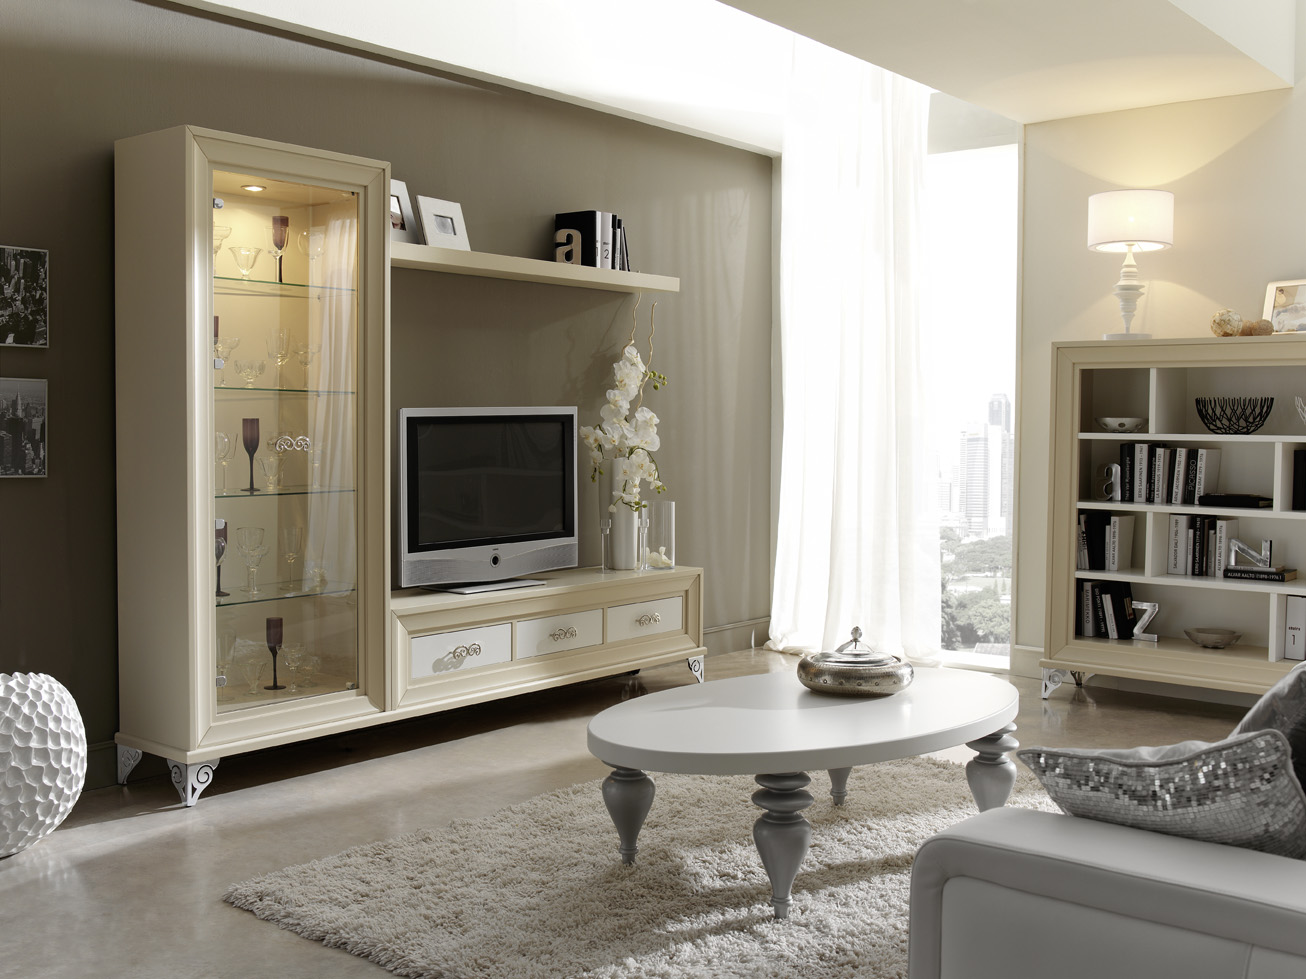 Sal n rom ntico muebles andaluc a for Muebles salon clasicos blancos